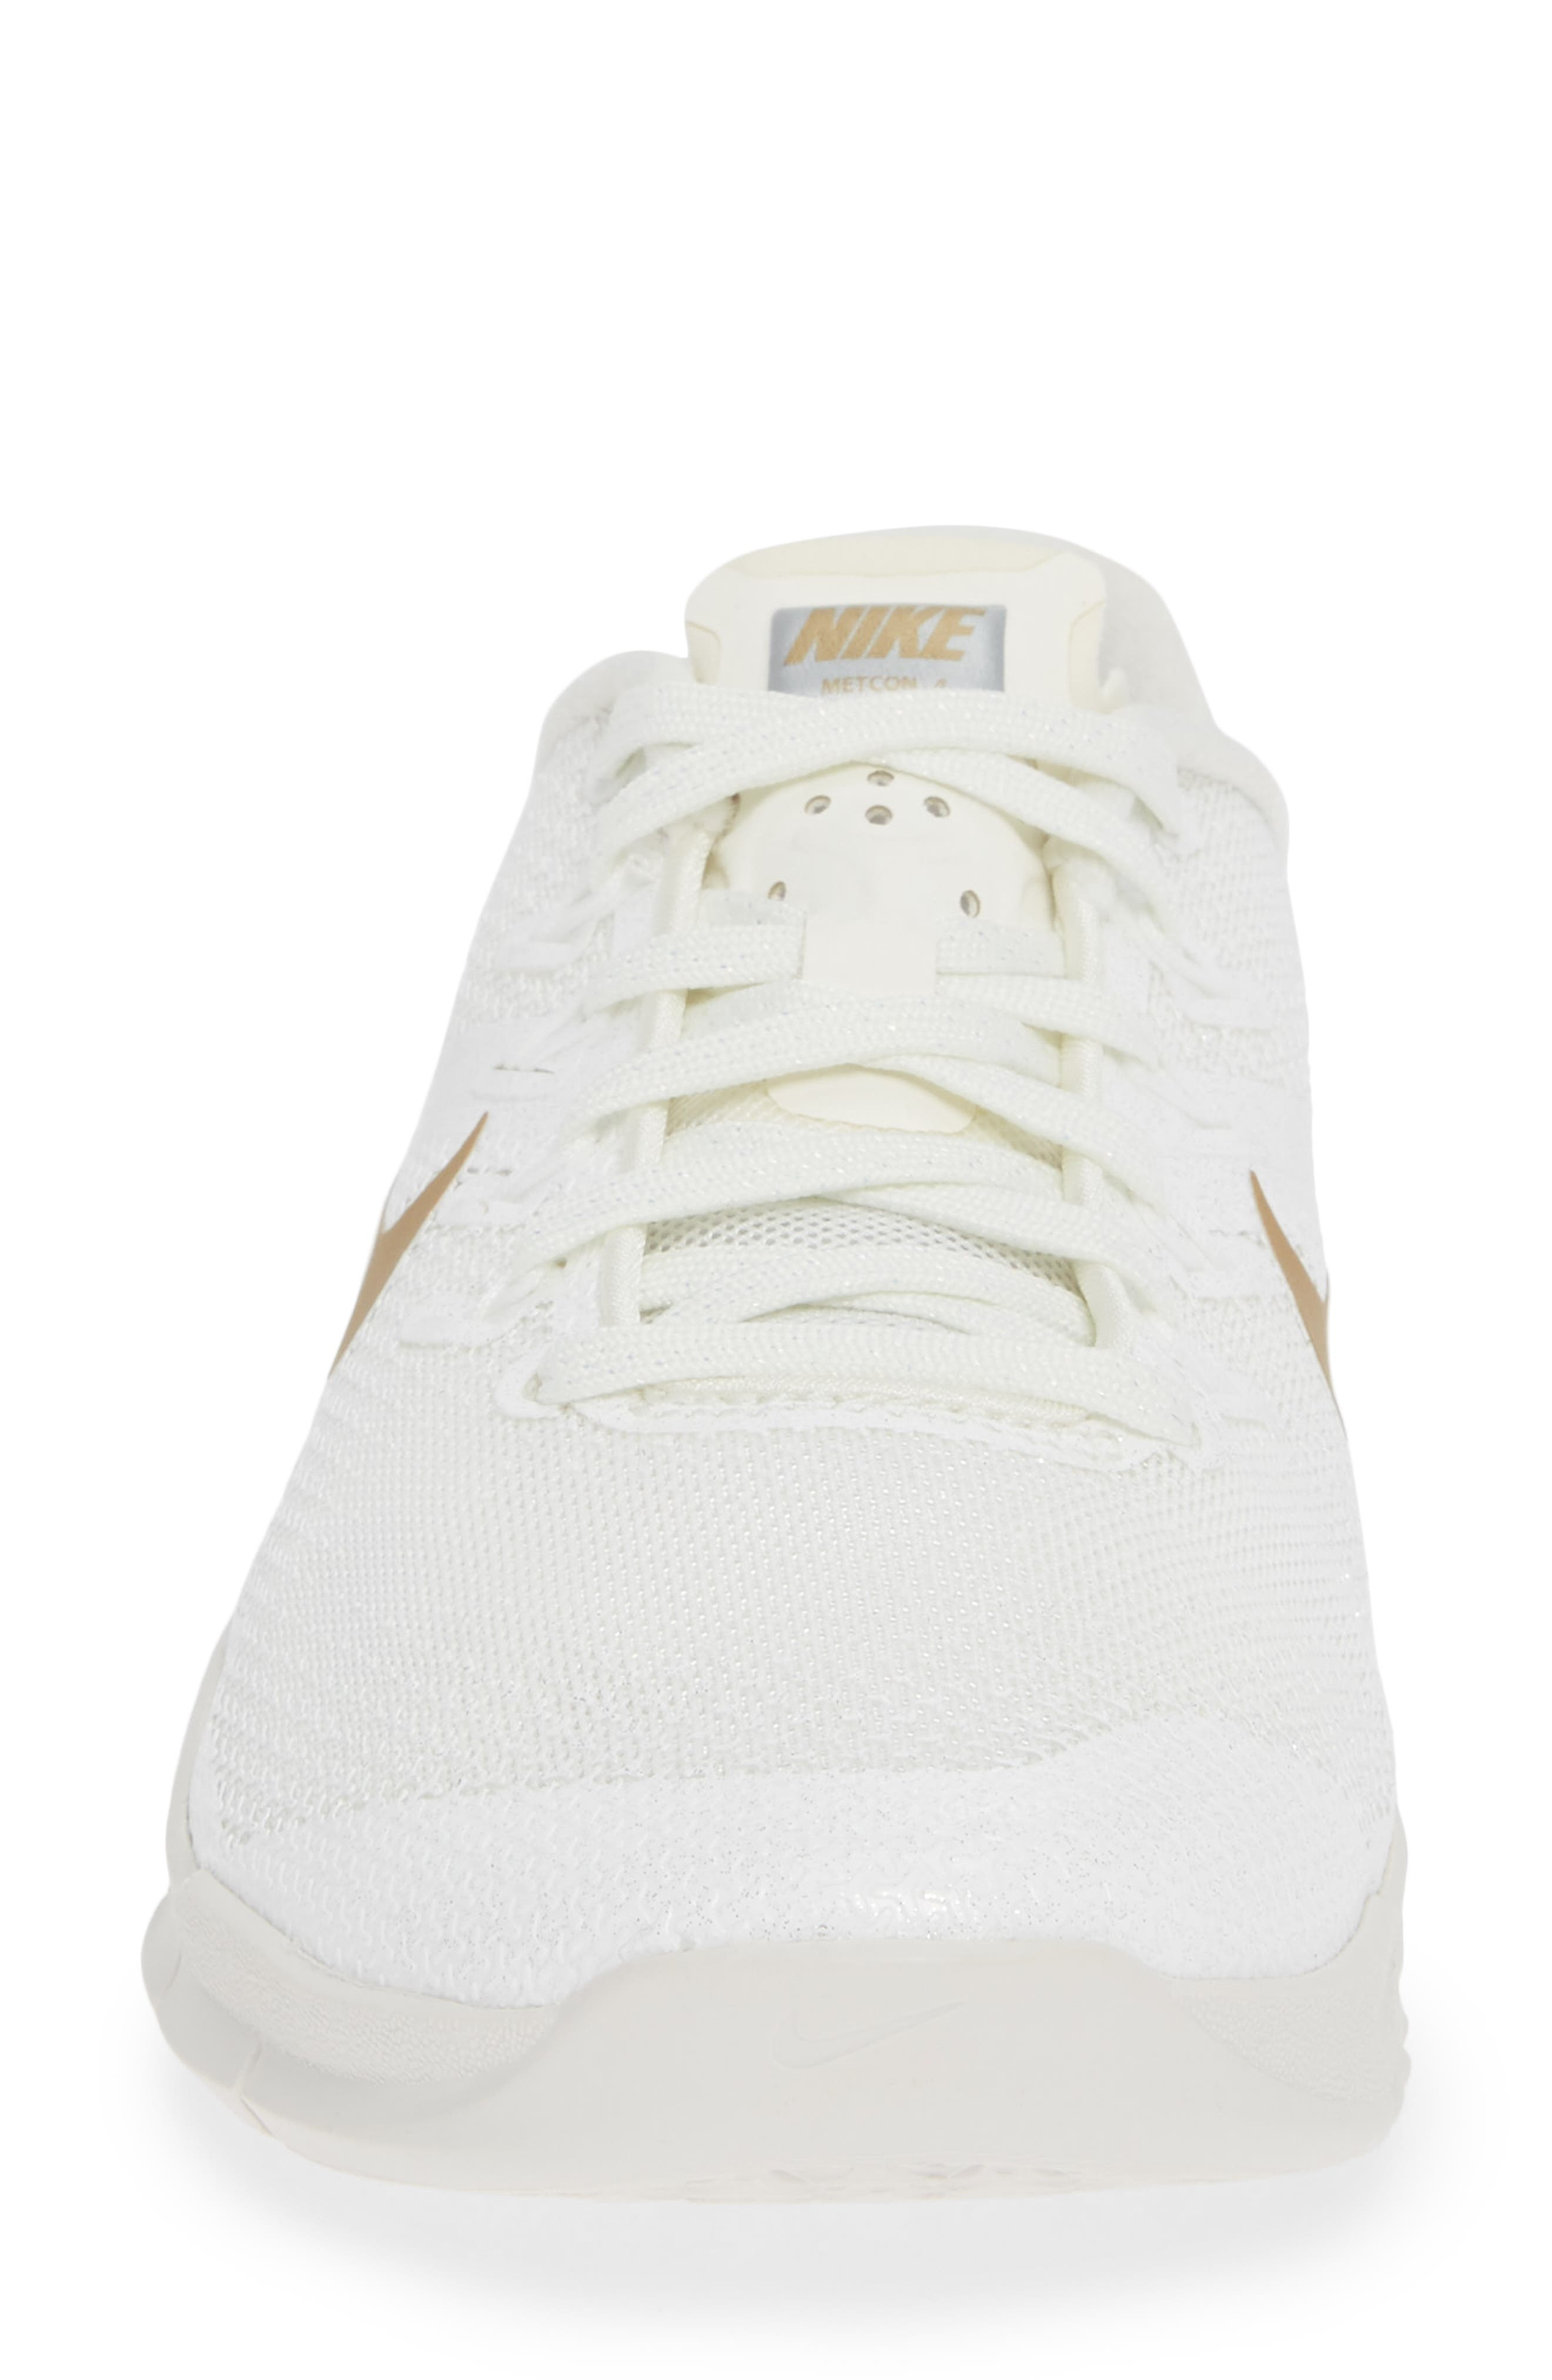 Metcon 4 Training Shoe,                             Alternate thumbnail 4, color,                             CHAMPAGNE